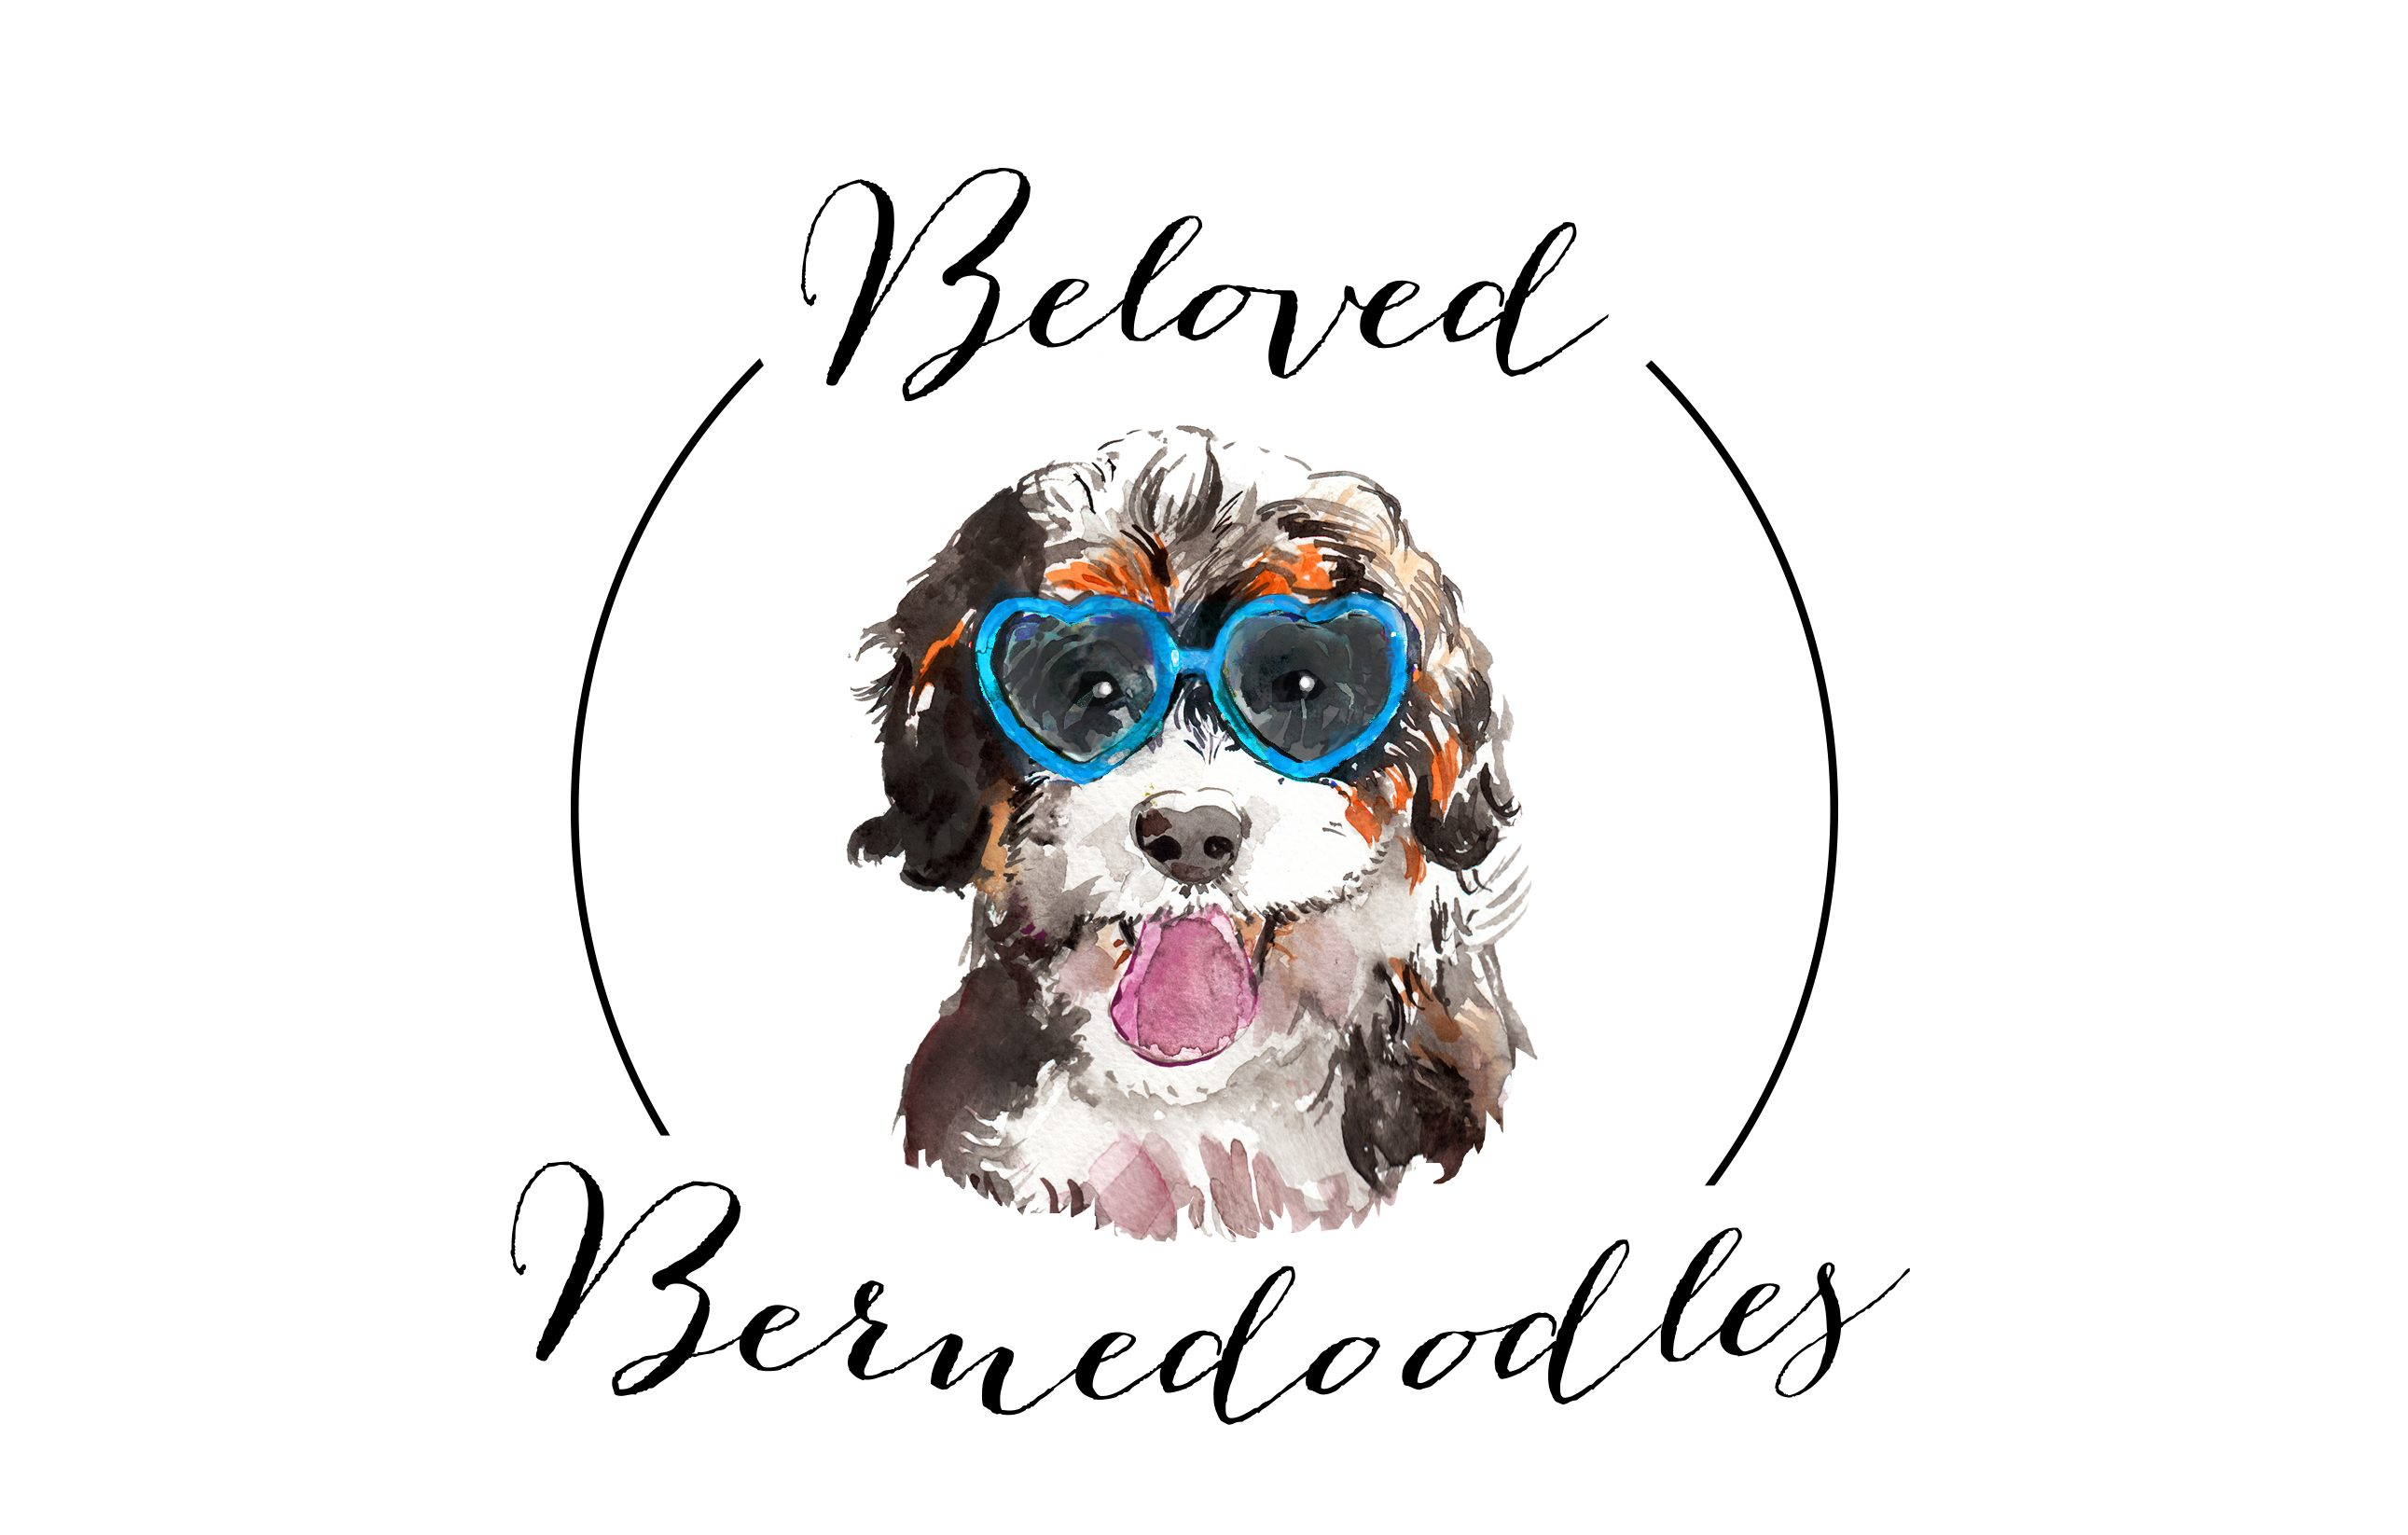 Beloved Bernedoodles